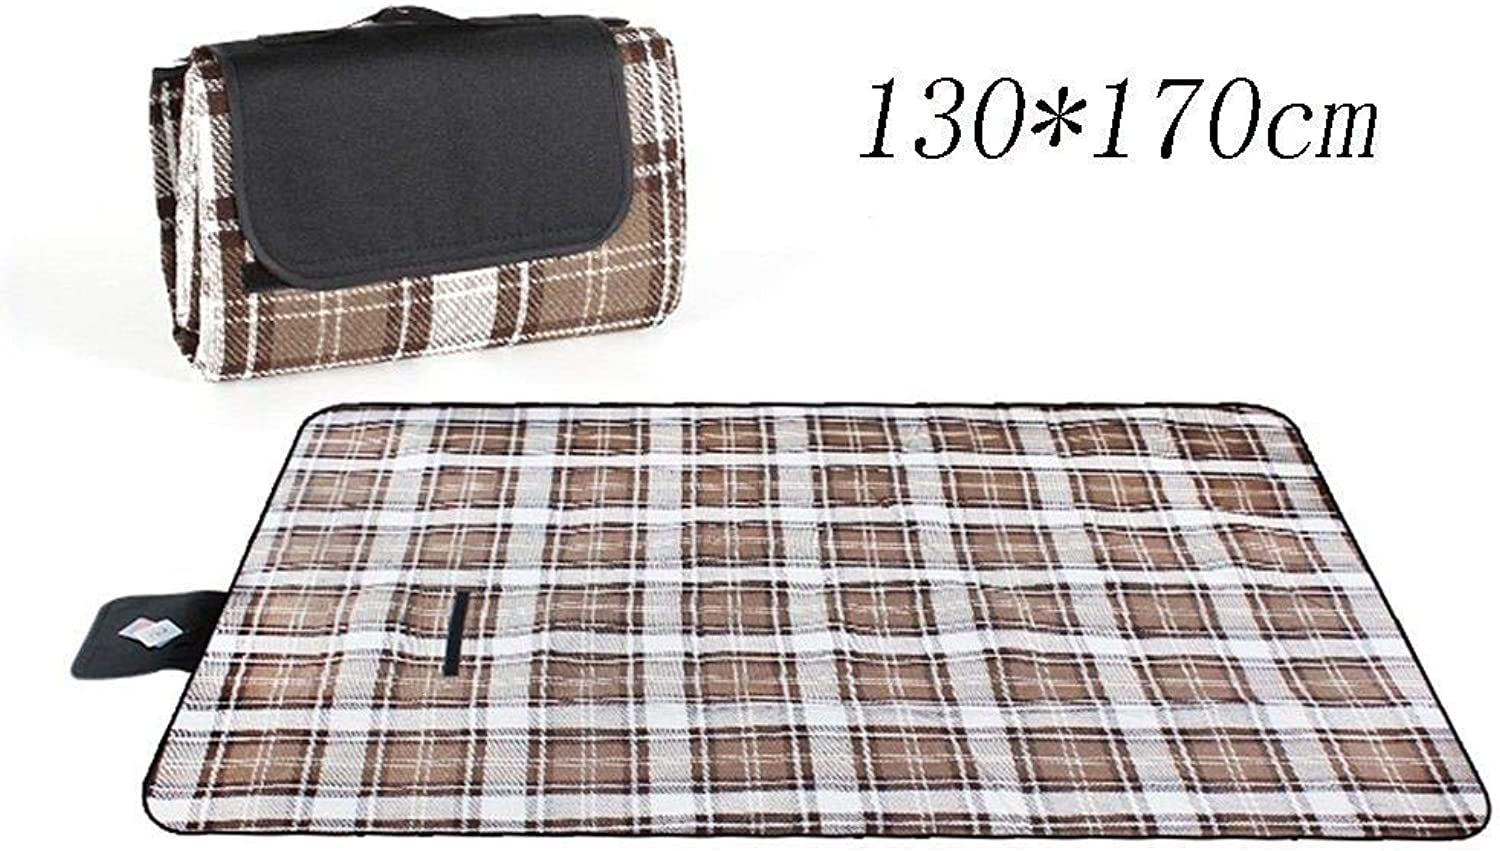 Picnic Lawn Mat Outdoor Beach Waterproof Portable Camping Blanket 130  170cm (color    1, Size   130  170cm)